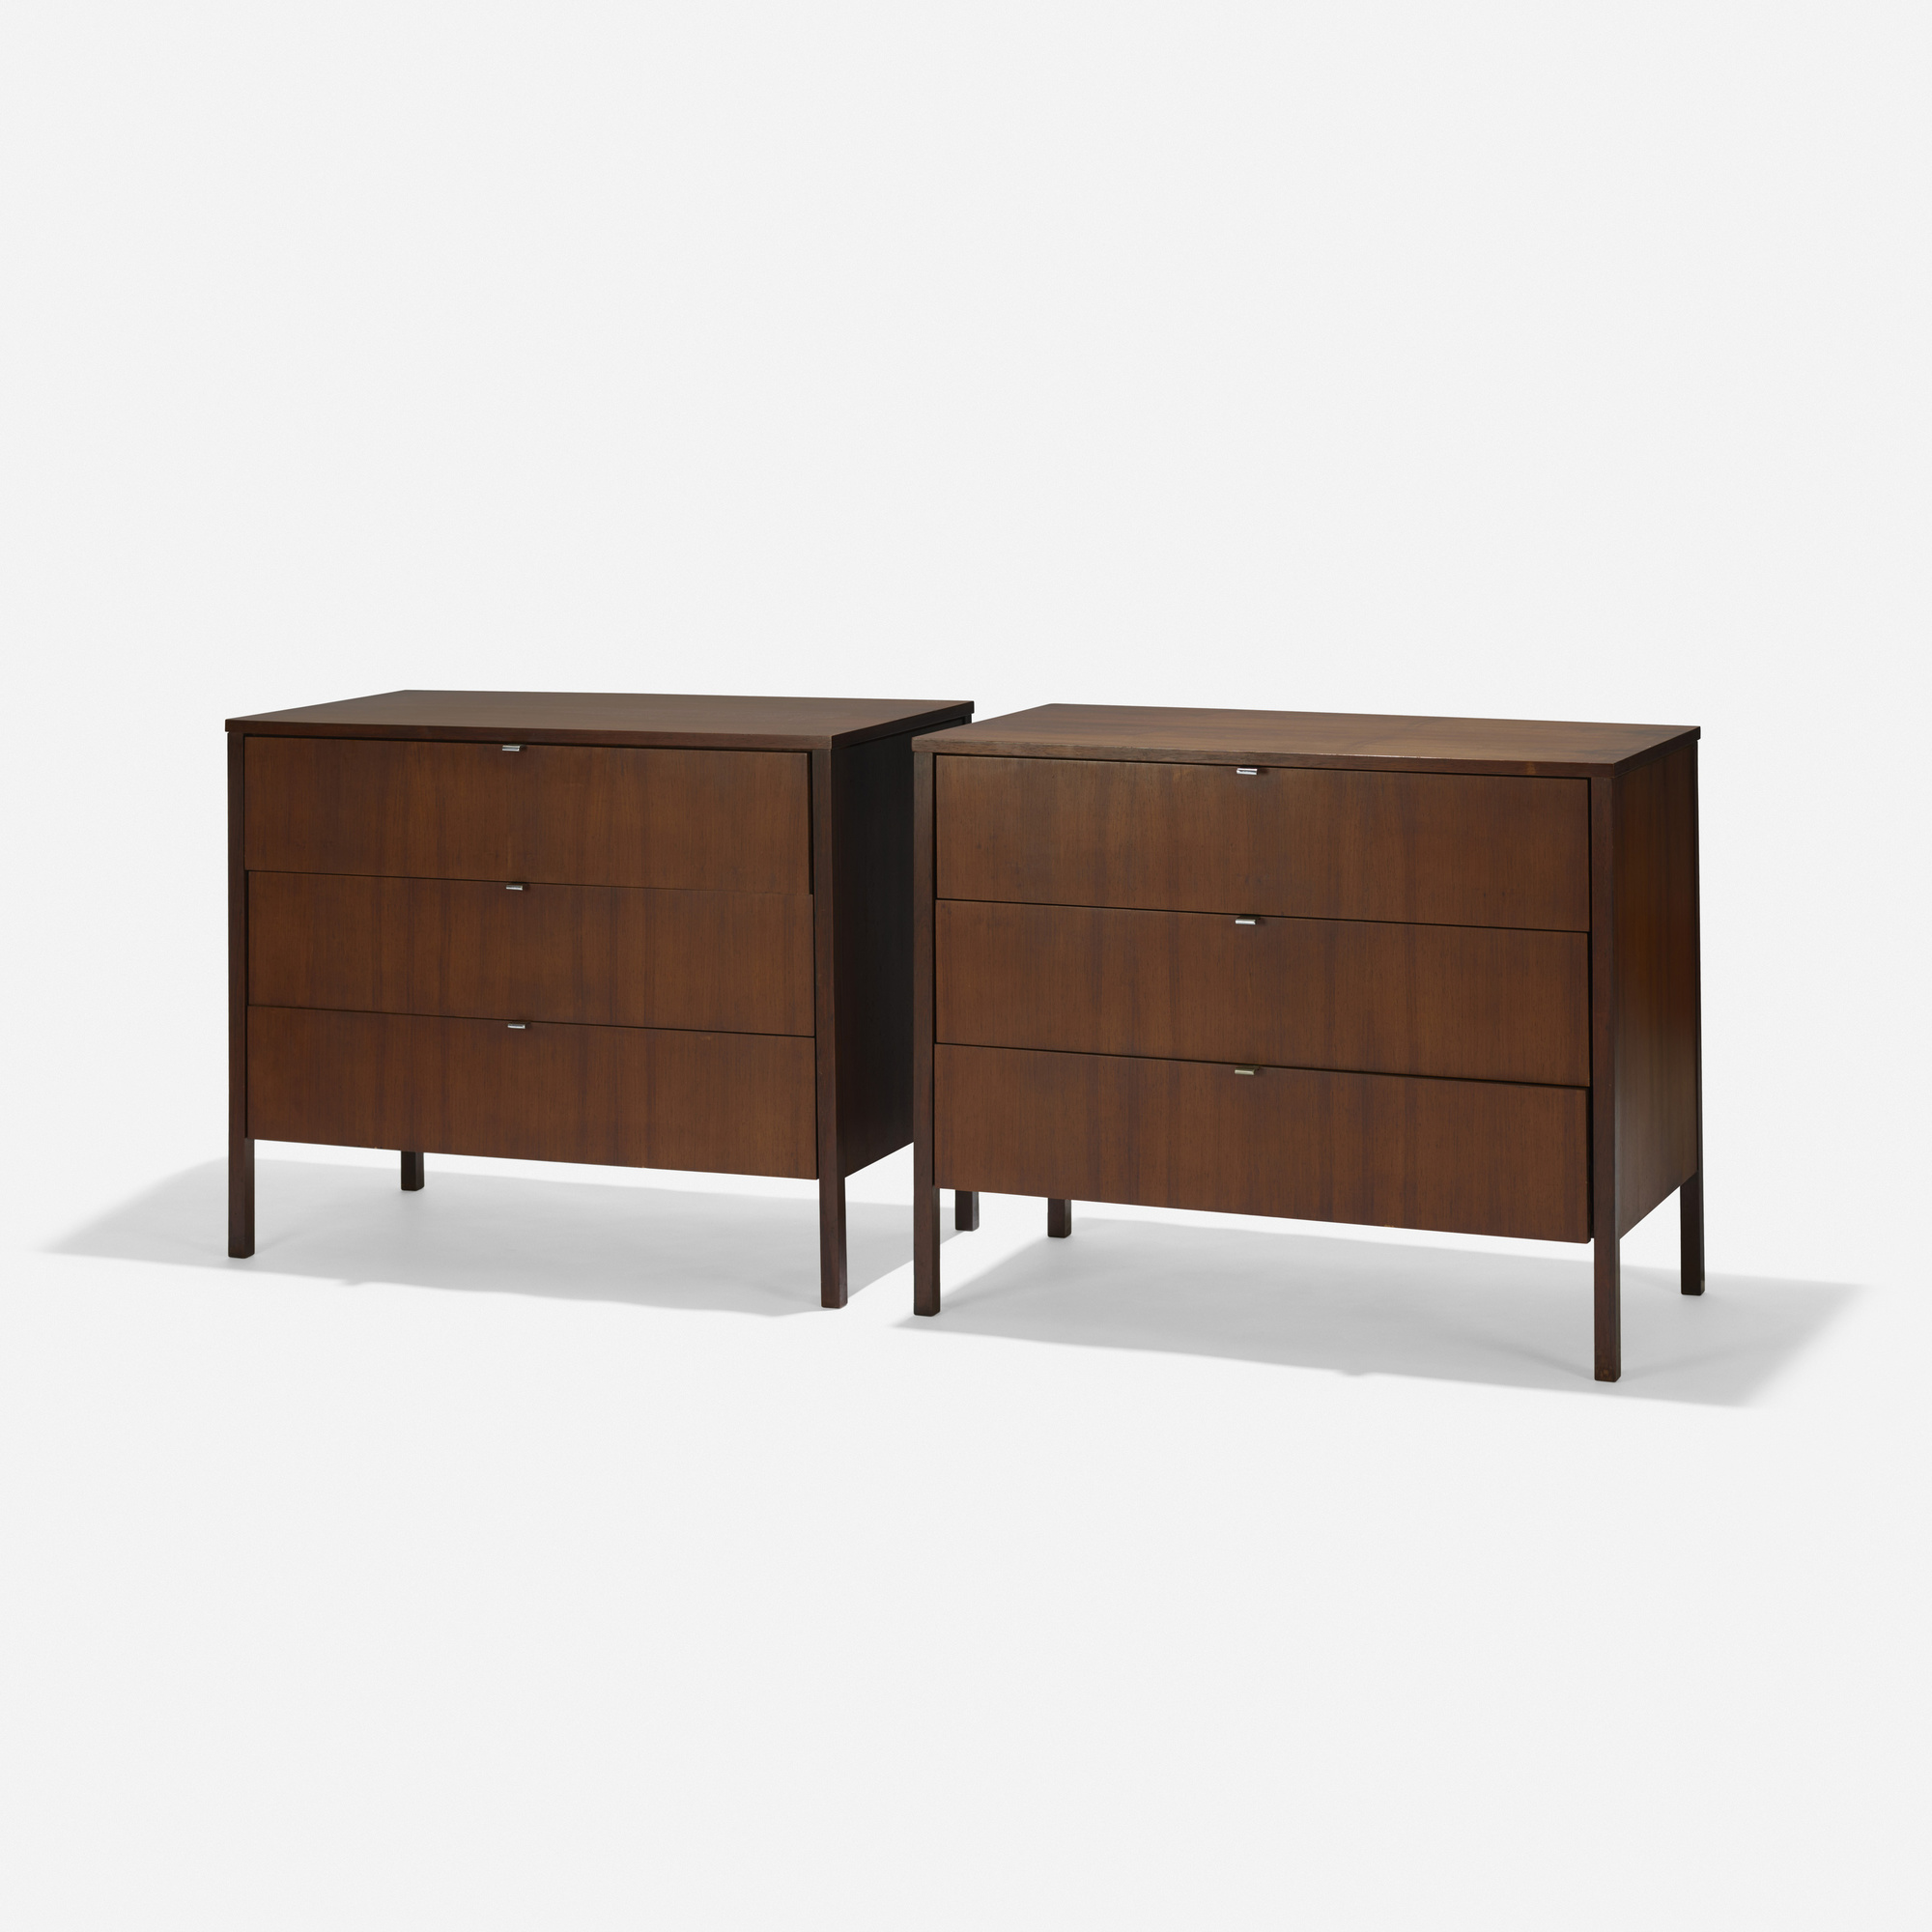 216: Florence Knoll / cabinets model 323-2, pair (1 of 2)